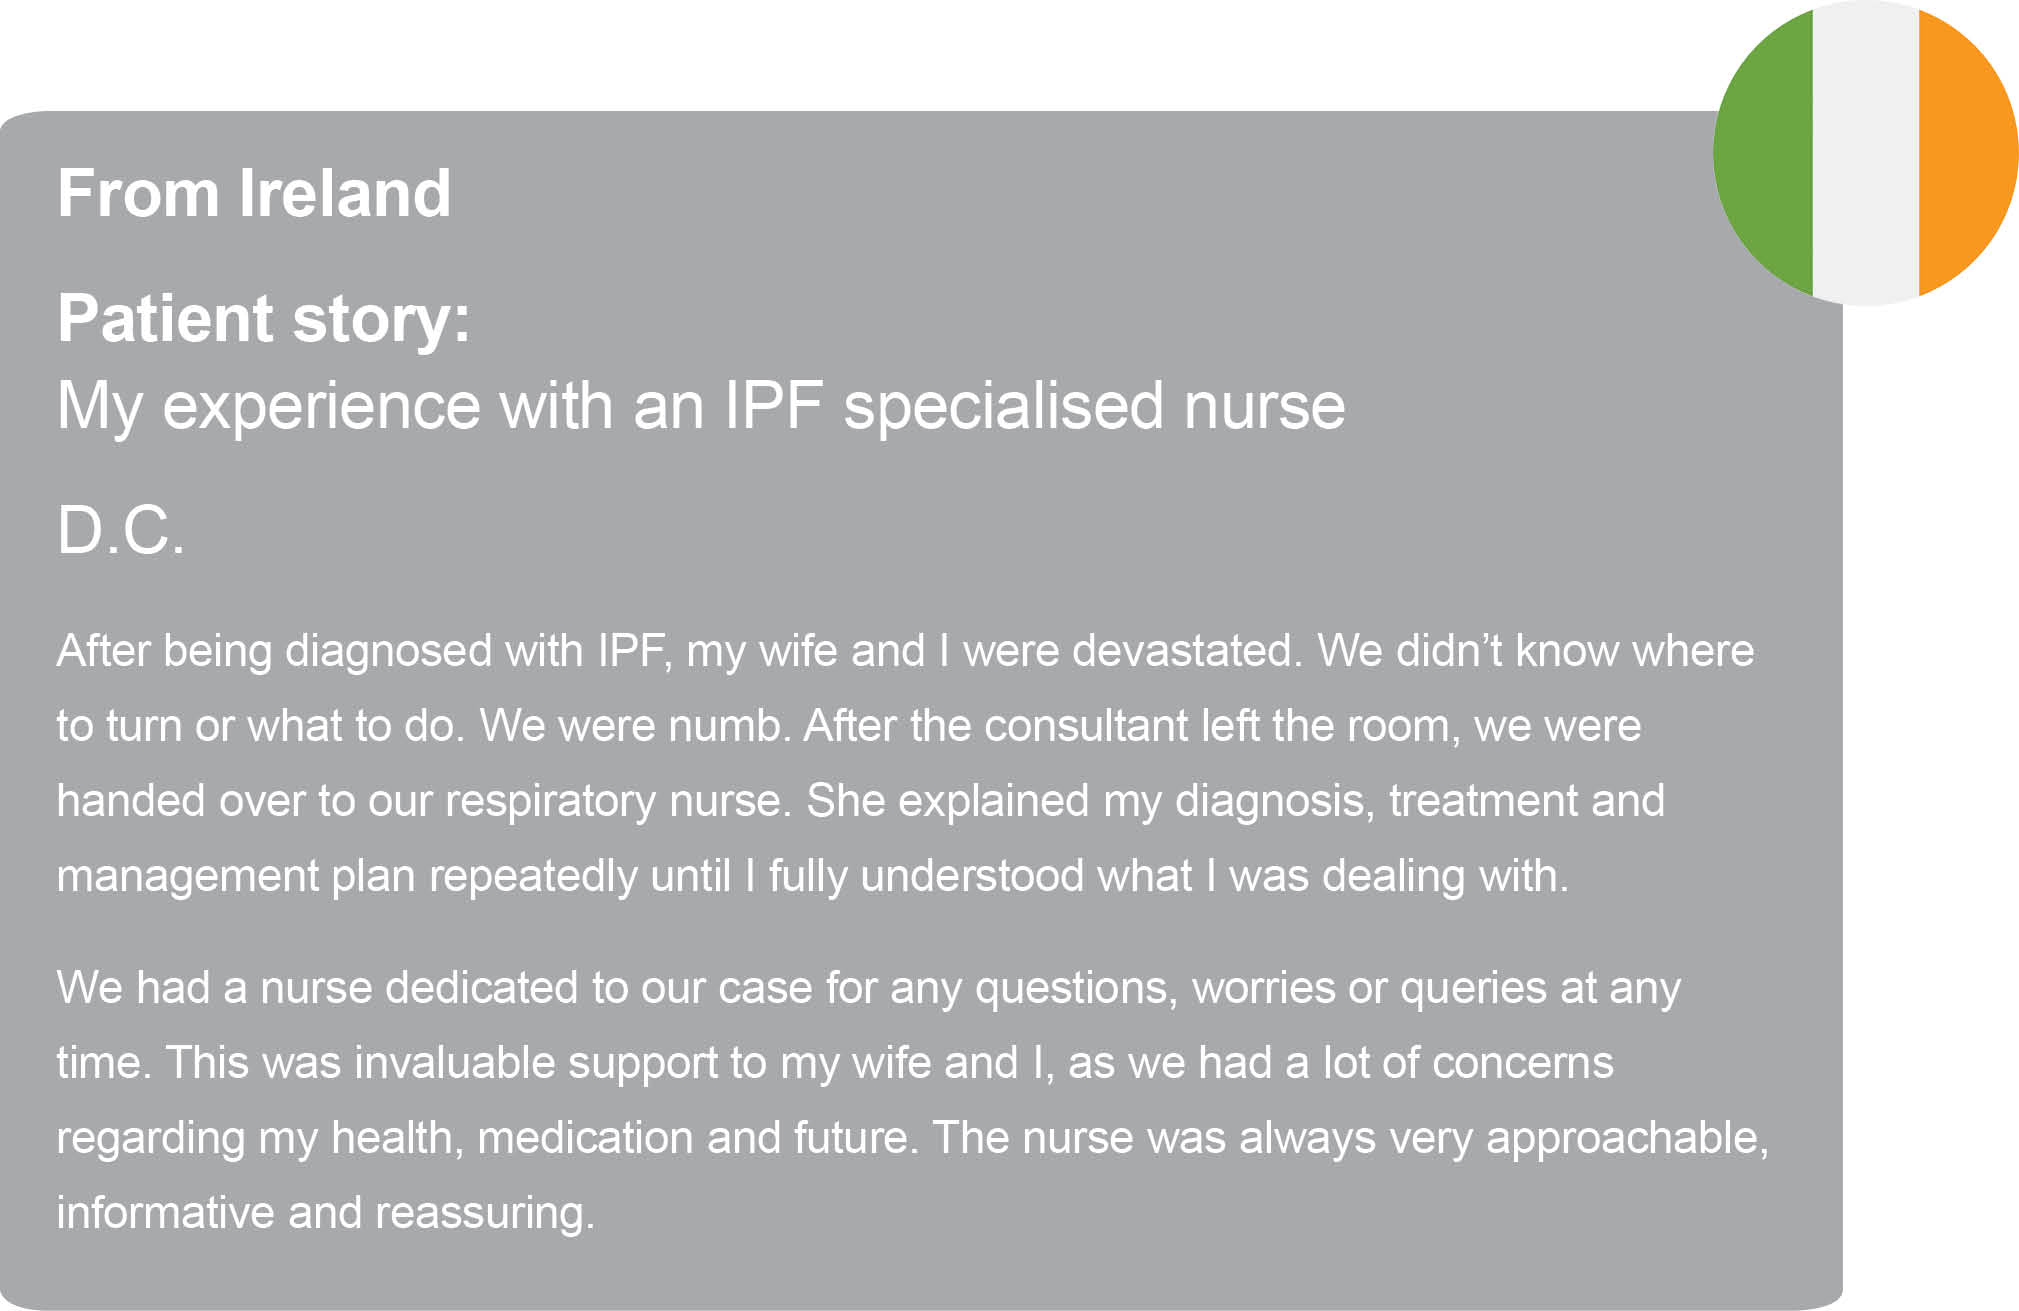 My experience with an IPF specialised nurse.jpg